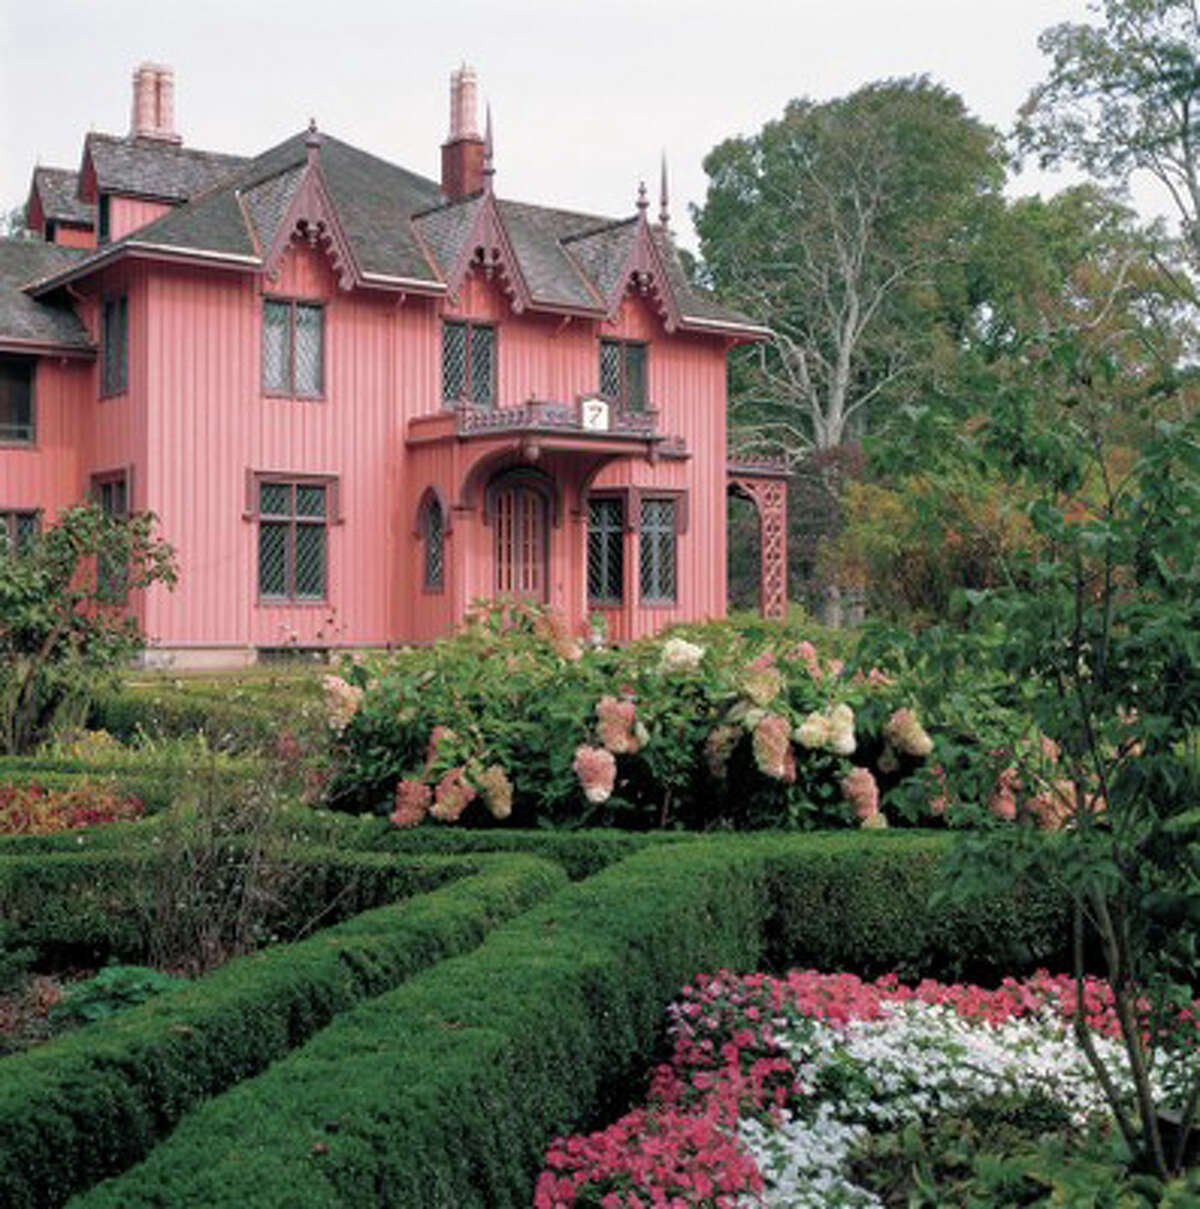 Not all of New England's great estate gardens have been totally lost. This one at Roseland Cottage, in Woodstock, has been restored.